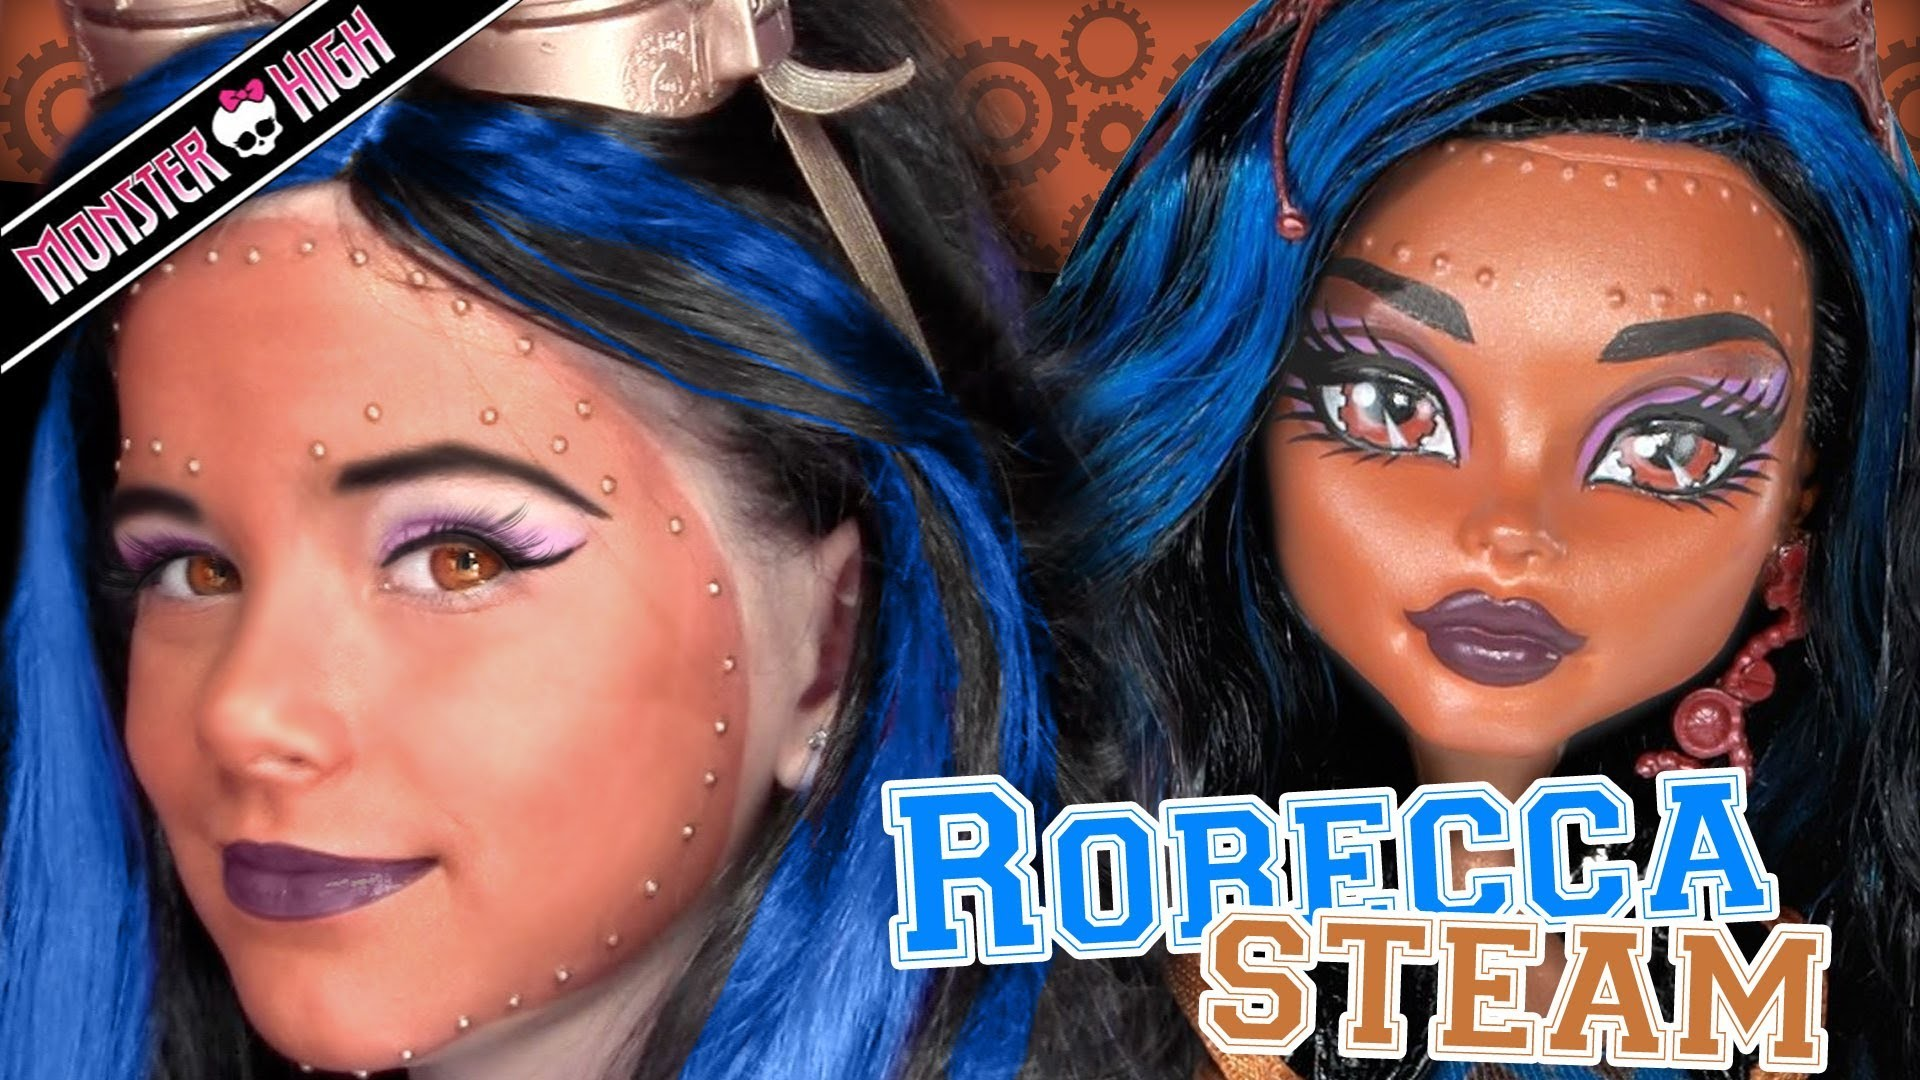 Robecca Steam Monster High Doll Costume Makeup Tutorial for Cosplay or Halloween